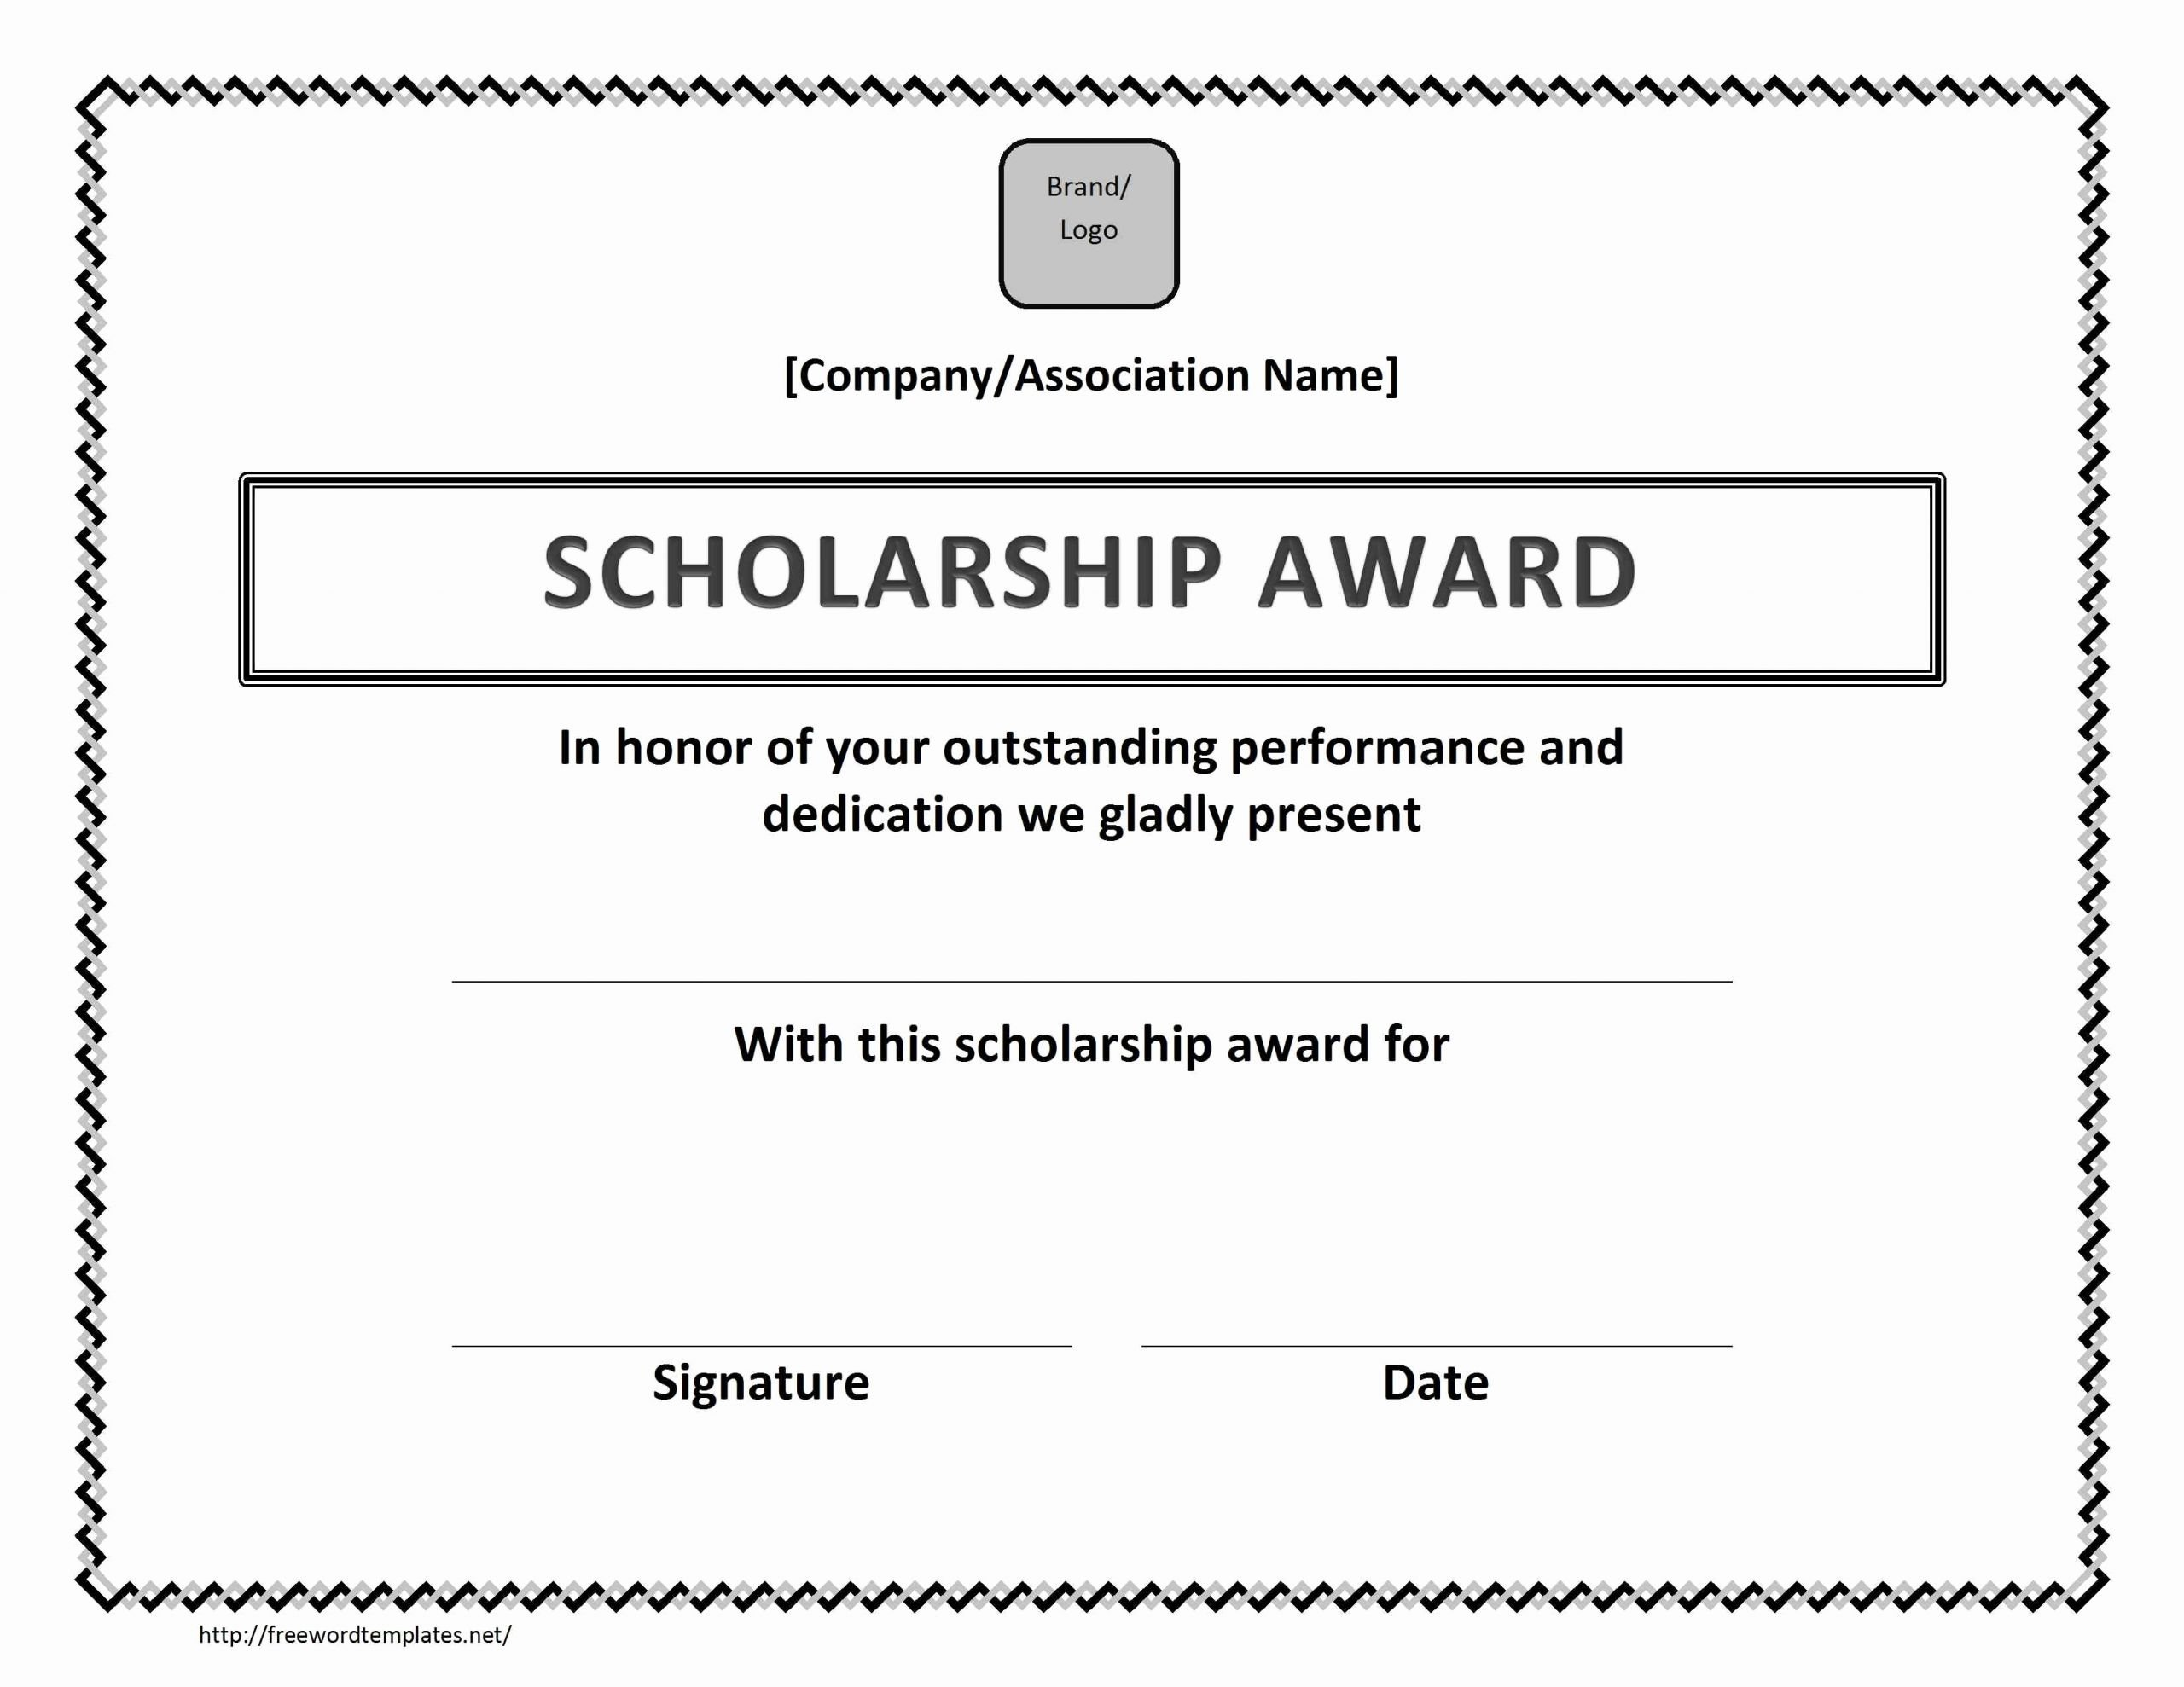 Scholarship Certificate Templates Free Awesome Scholarship Award Certificate Template